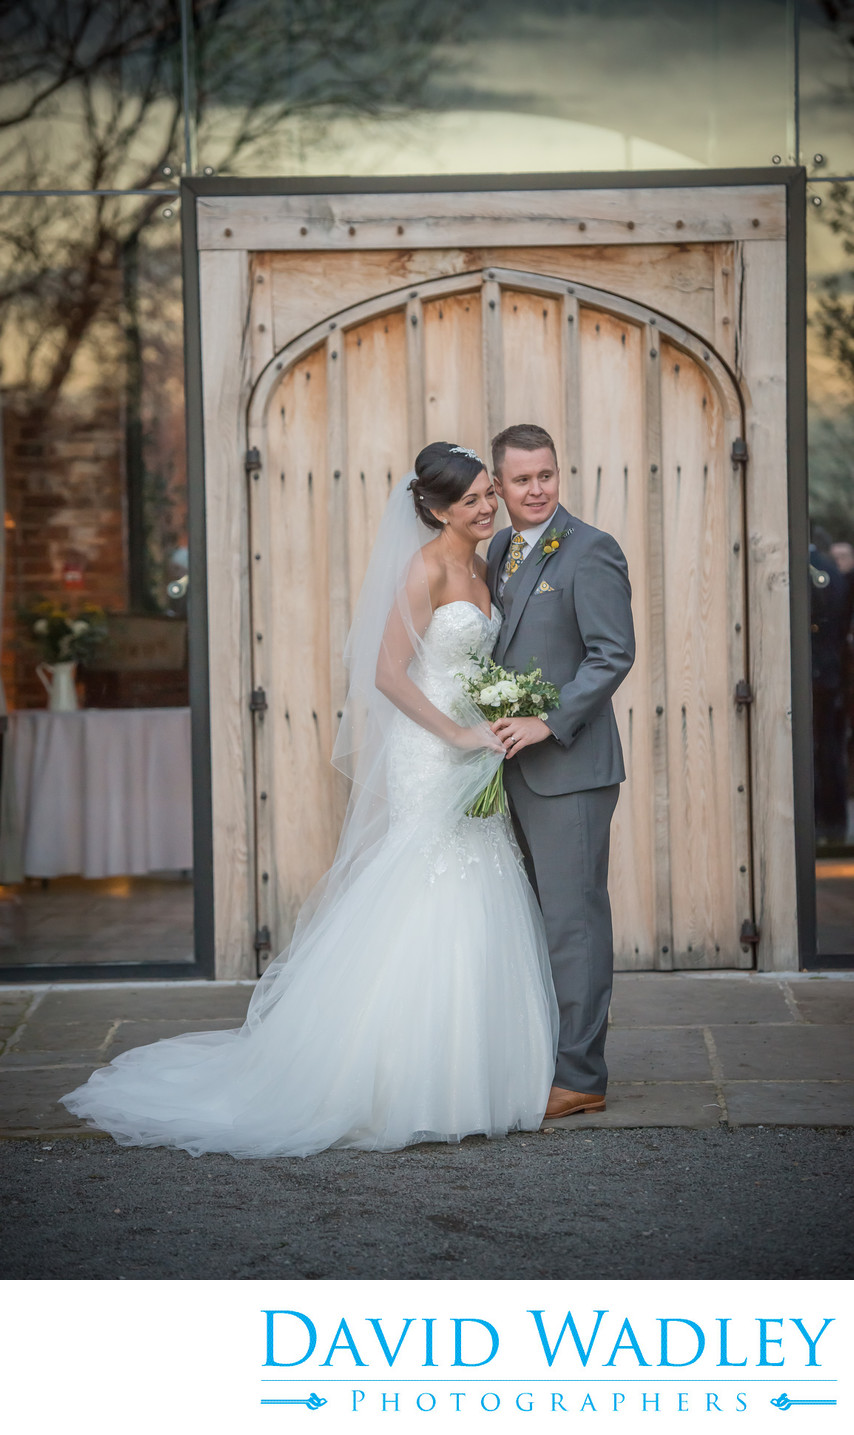 Bride & Groom photographed outside doorway at stunning Shustoke Barn.